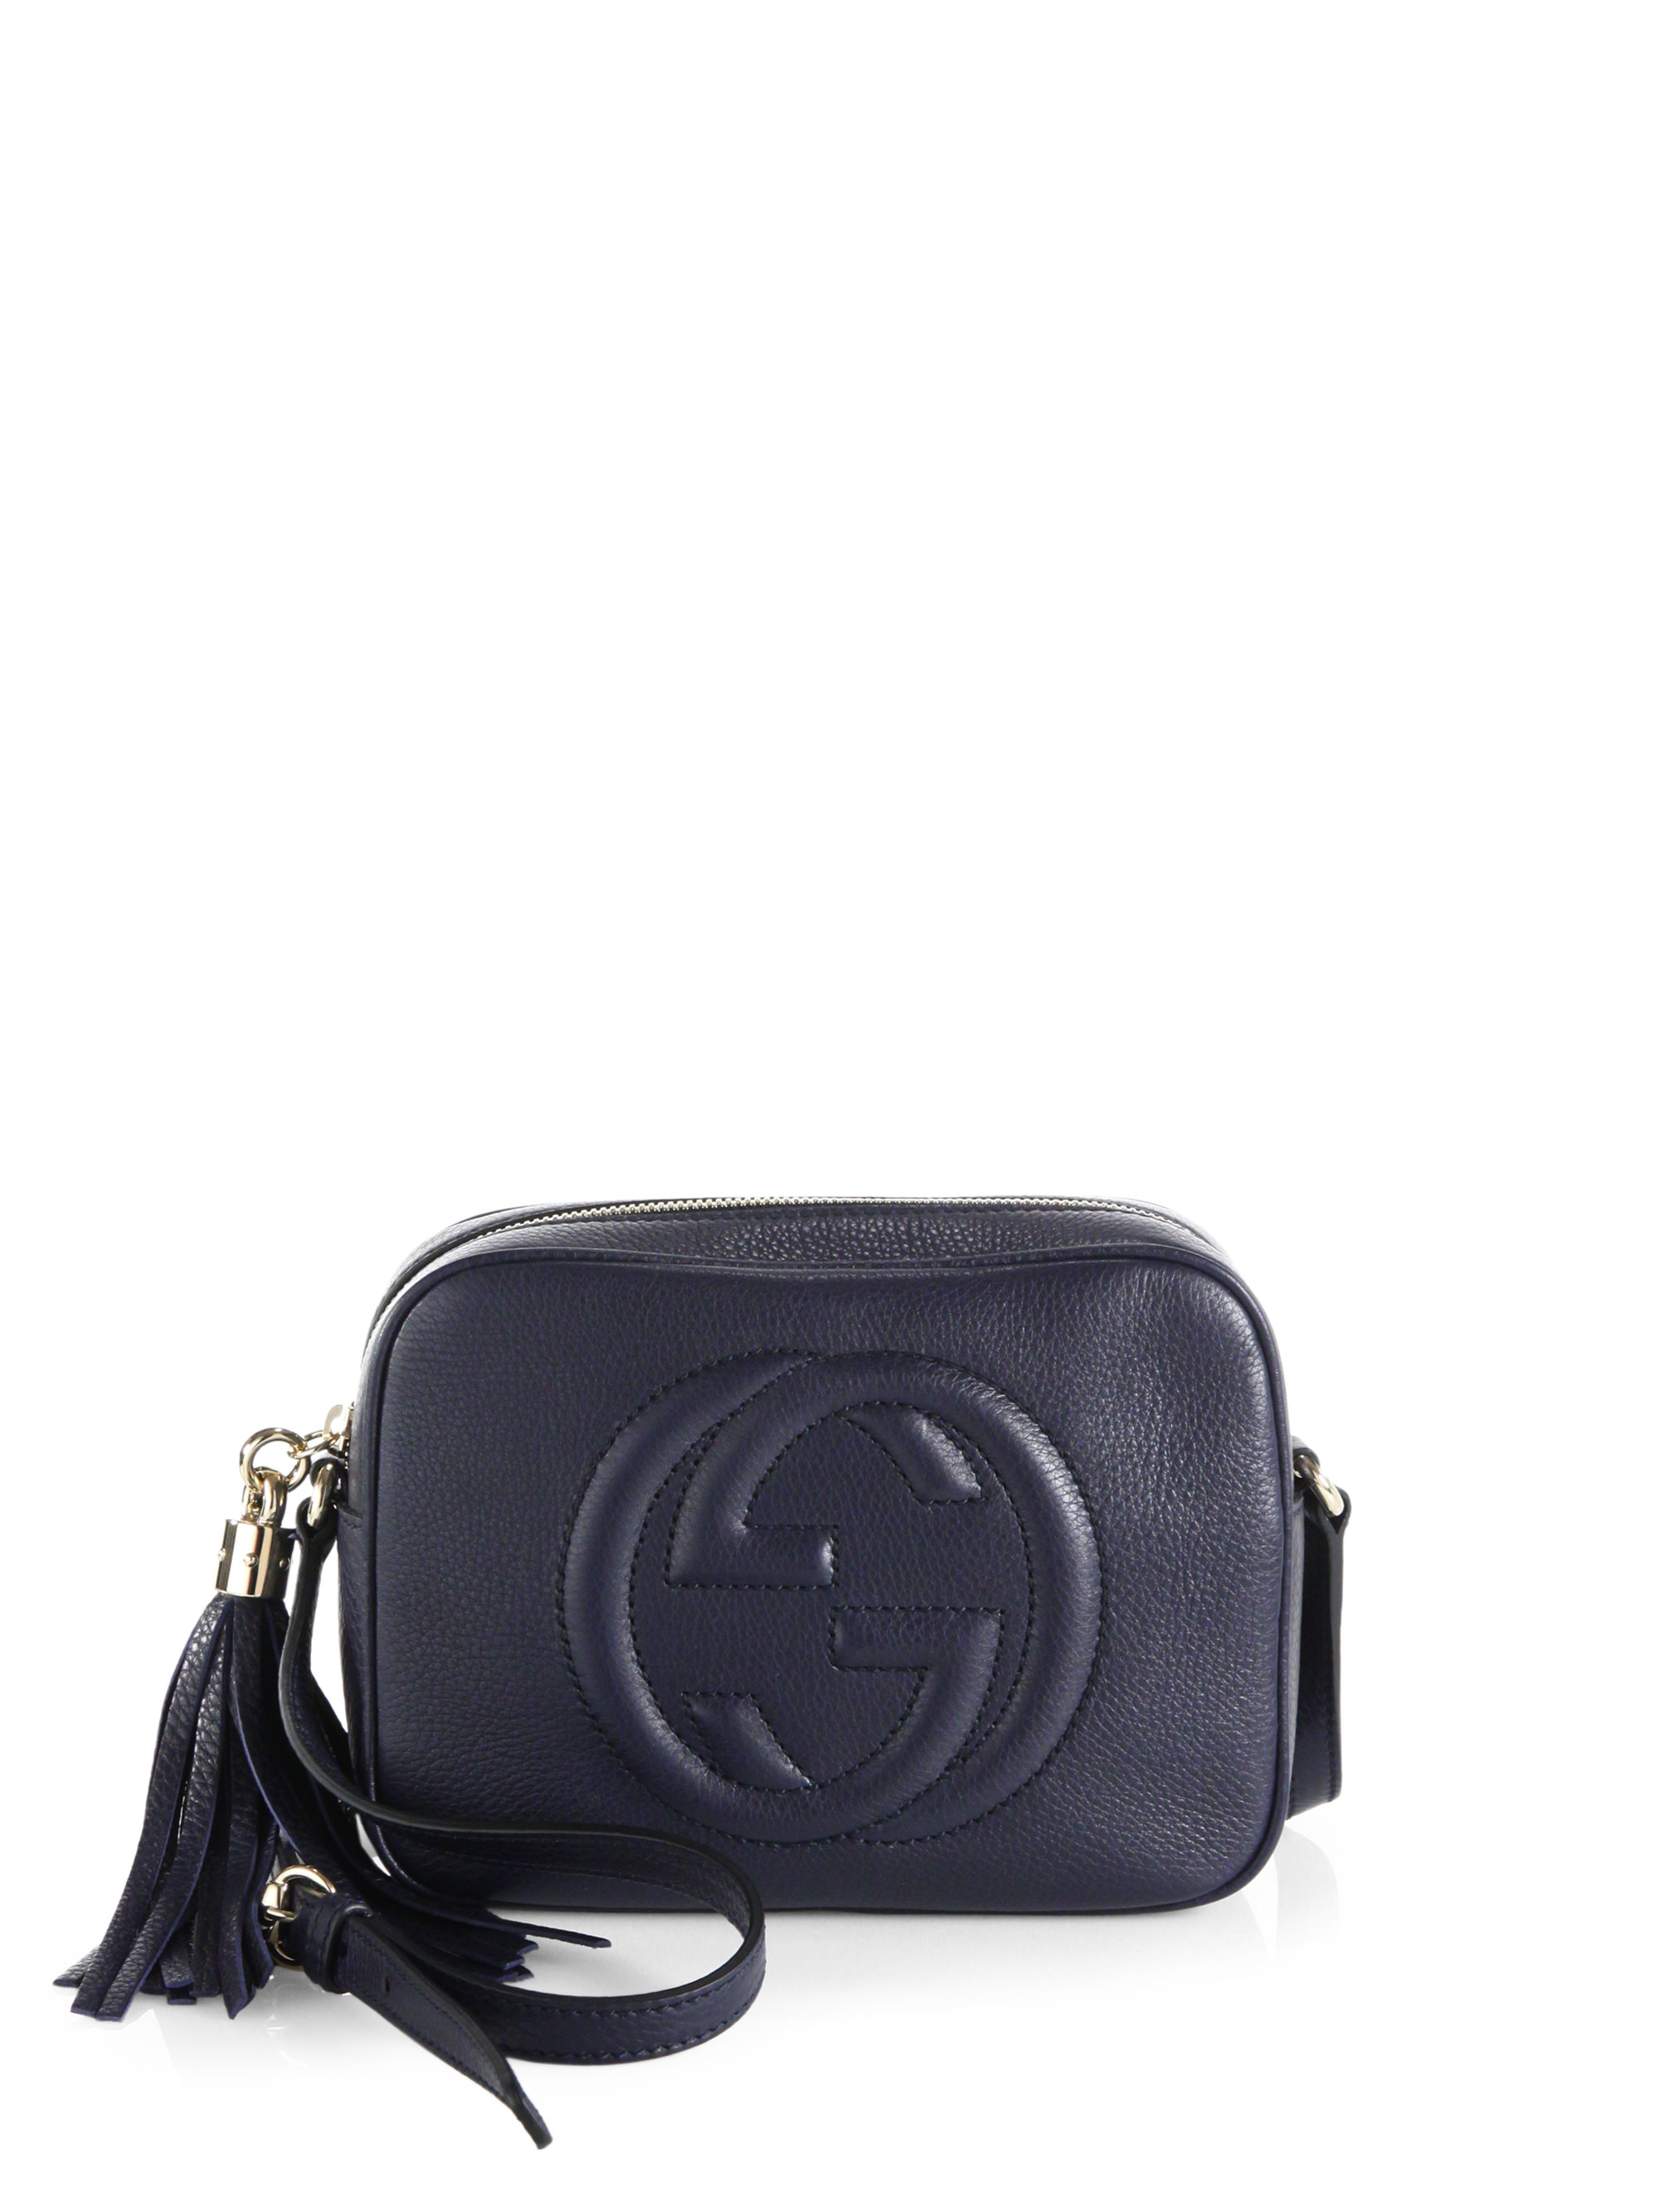 Gallery Previously Sold At Saks Fifth Avenue Women S Gucci Soho Bag